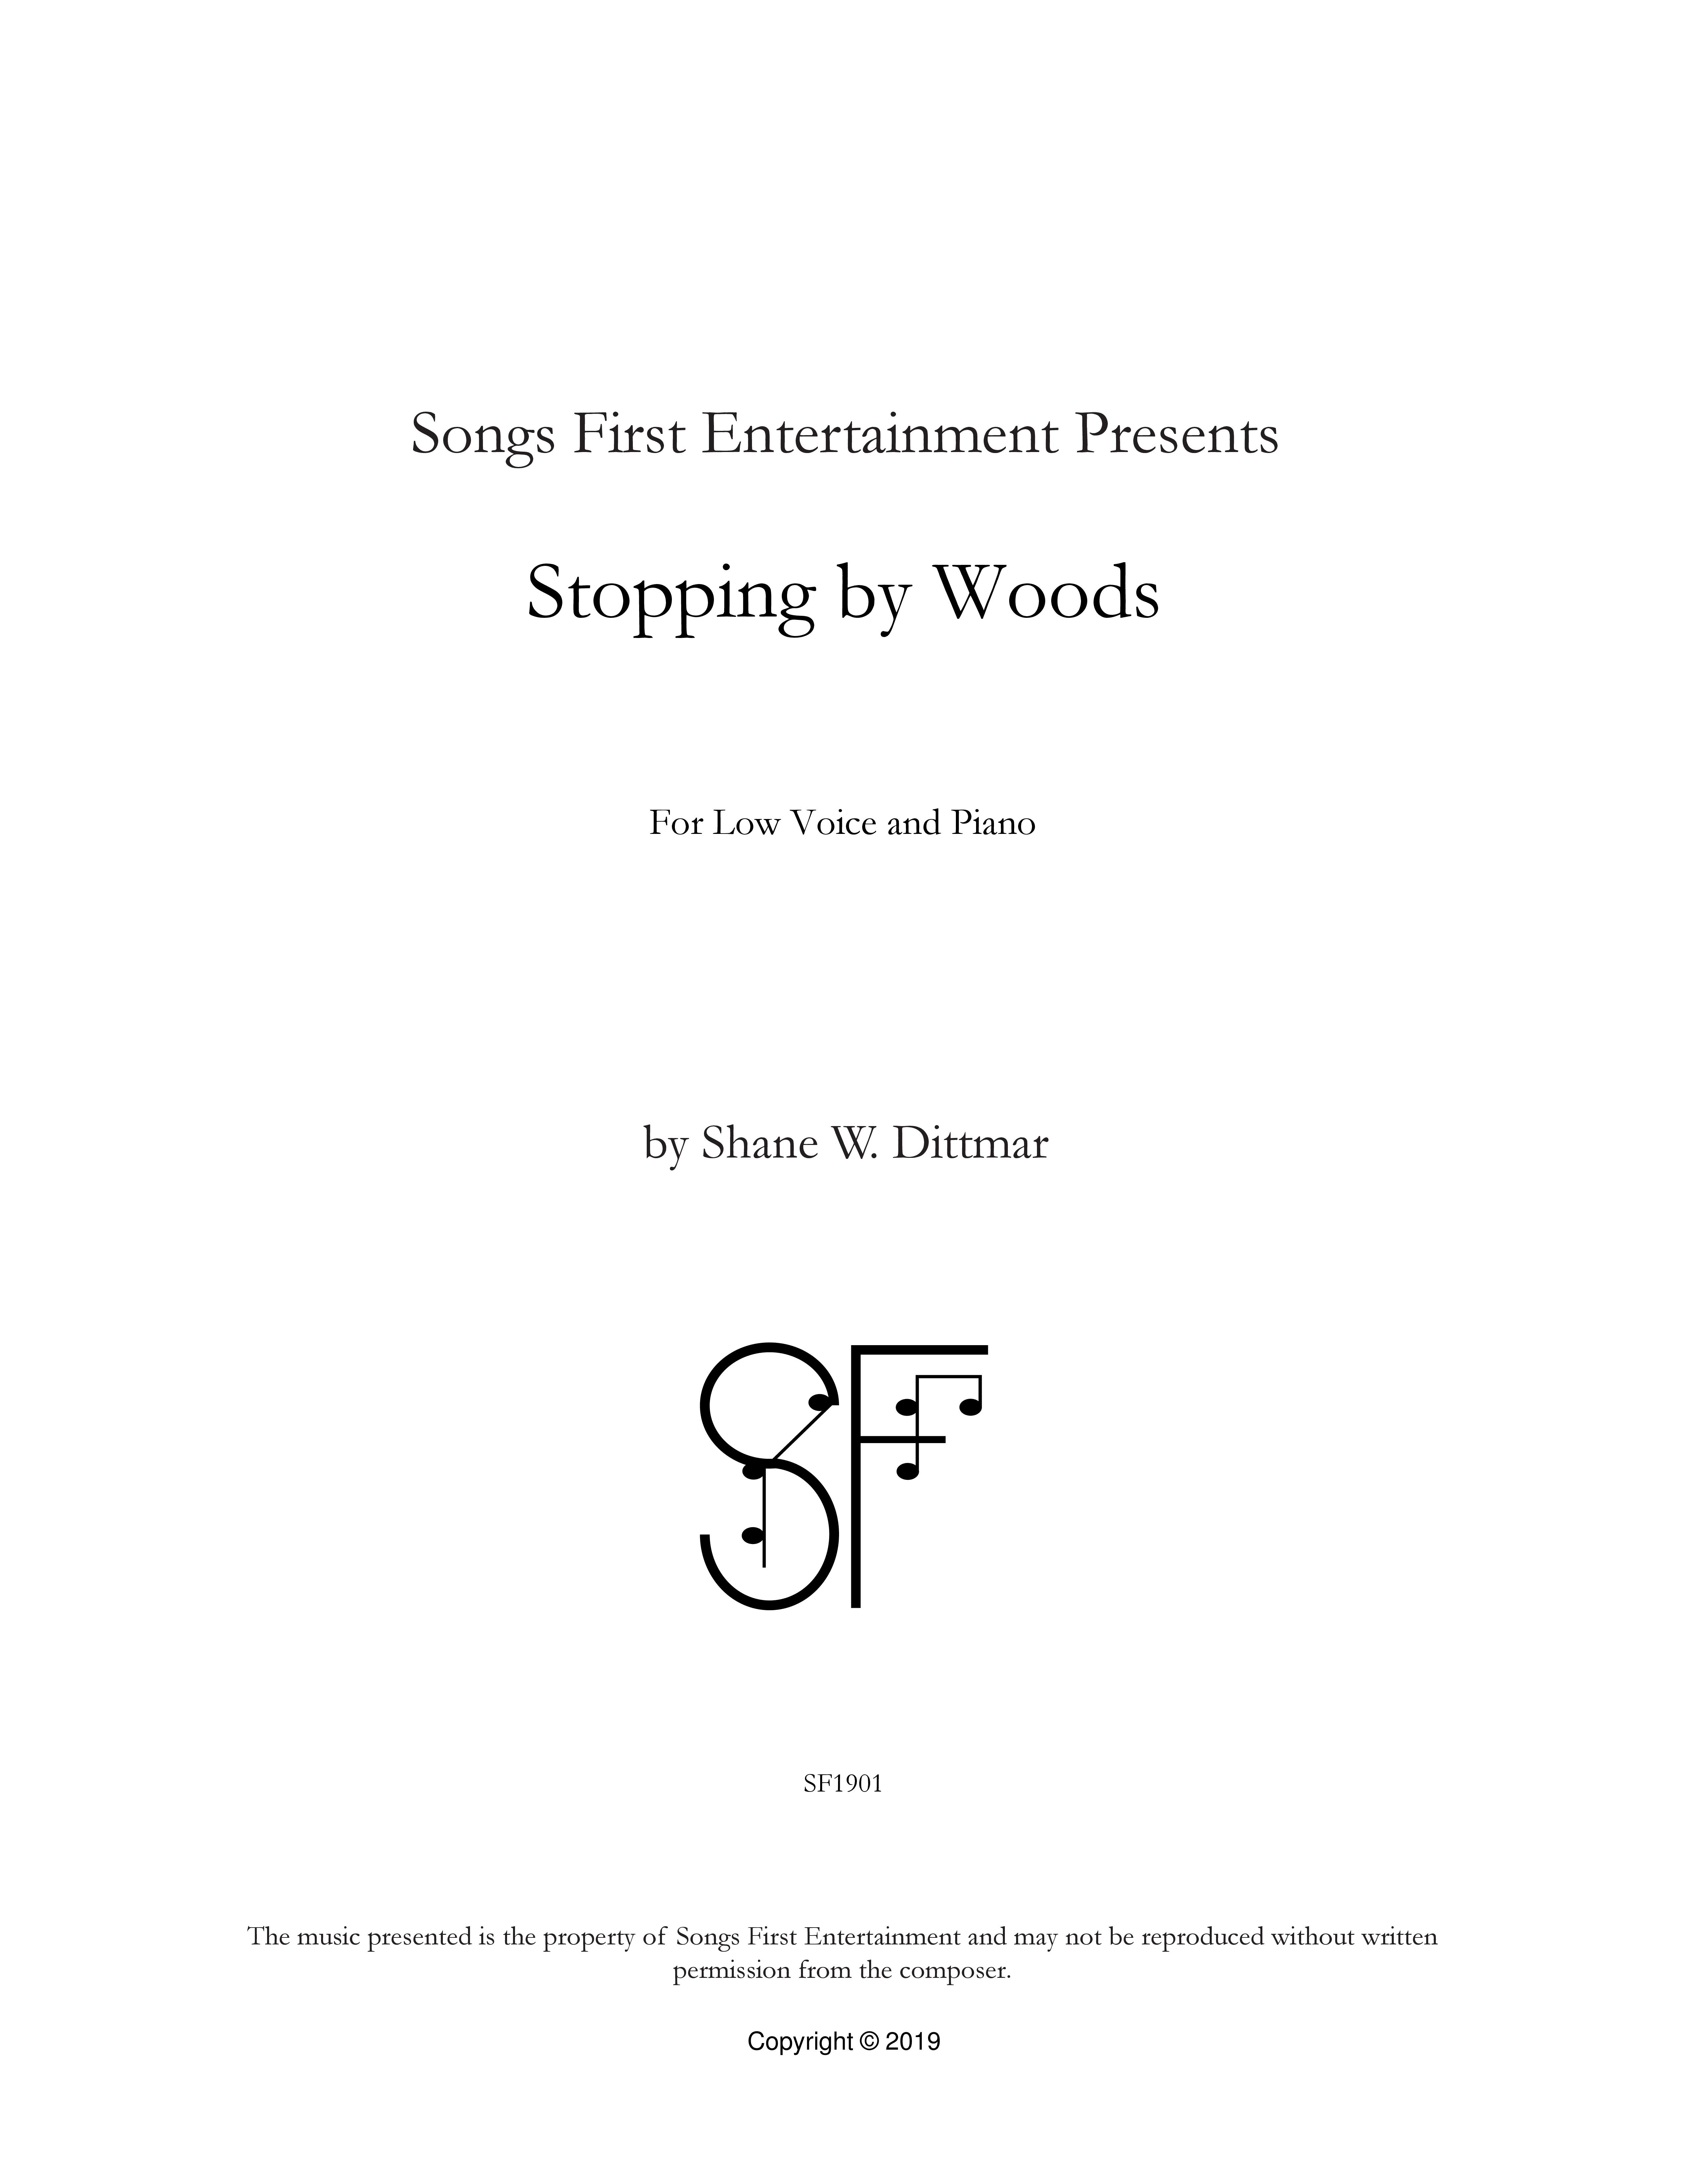 Stopping by Woods (Cover)